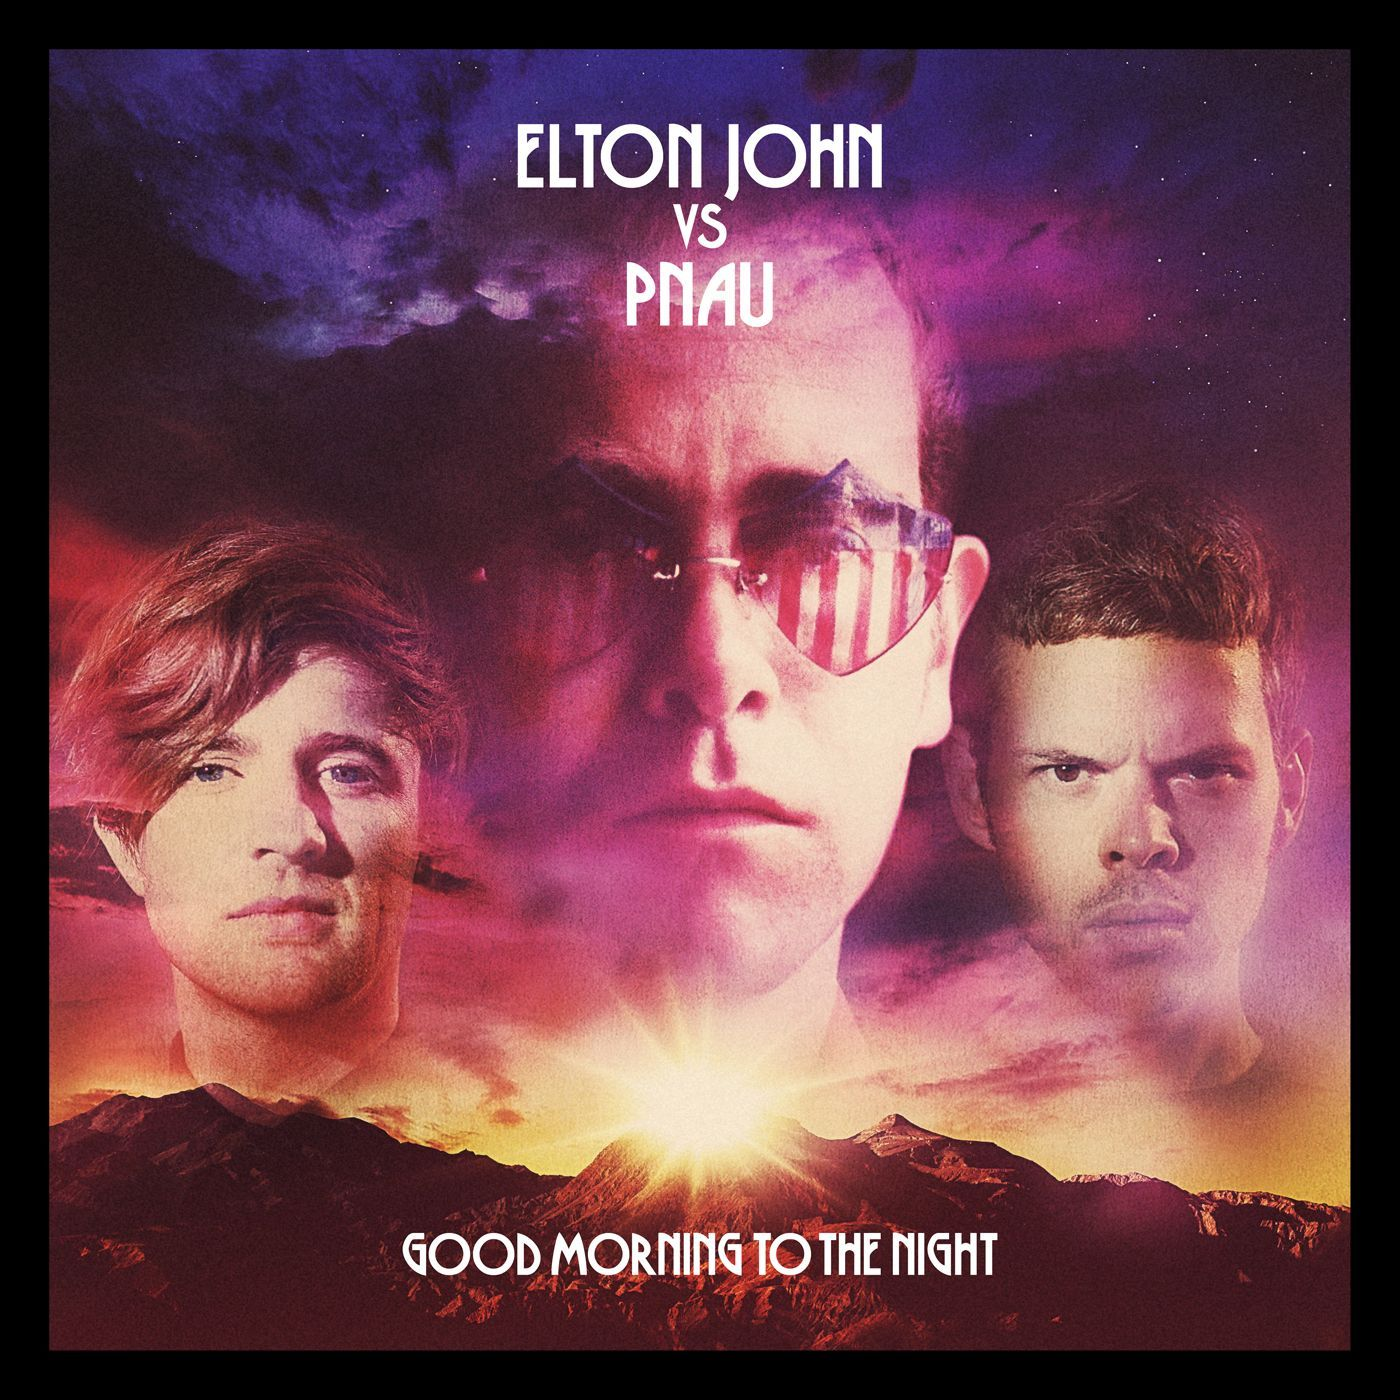 Pnau - Good Morning to the Night (feat. Elton John) (2012)